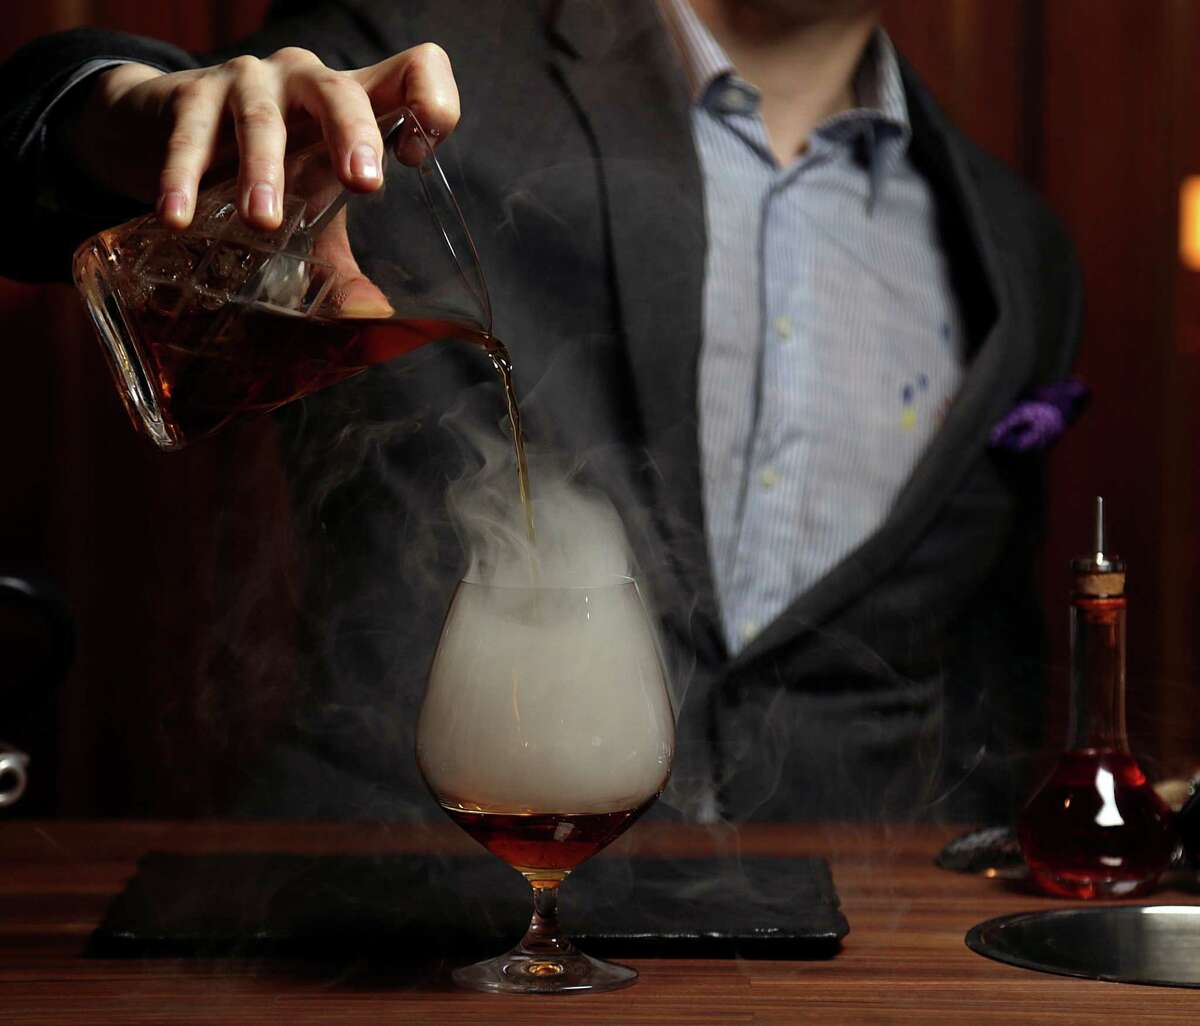 The Huntsman cocktail (scotch, Punt e Mes, apricot, and tea smoke at Bayou & Bottle in the Four Seasons Hotel Houston opening Jan. 21.